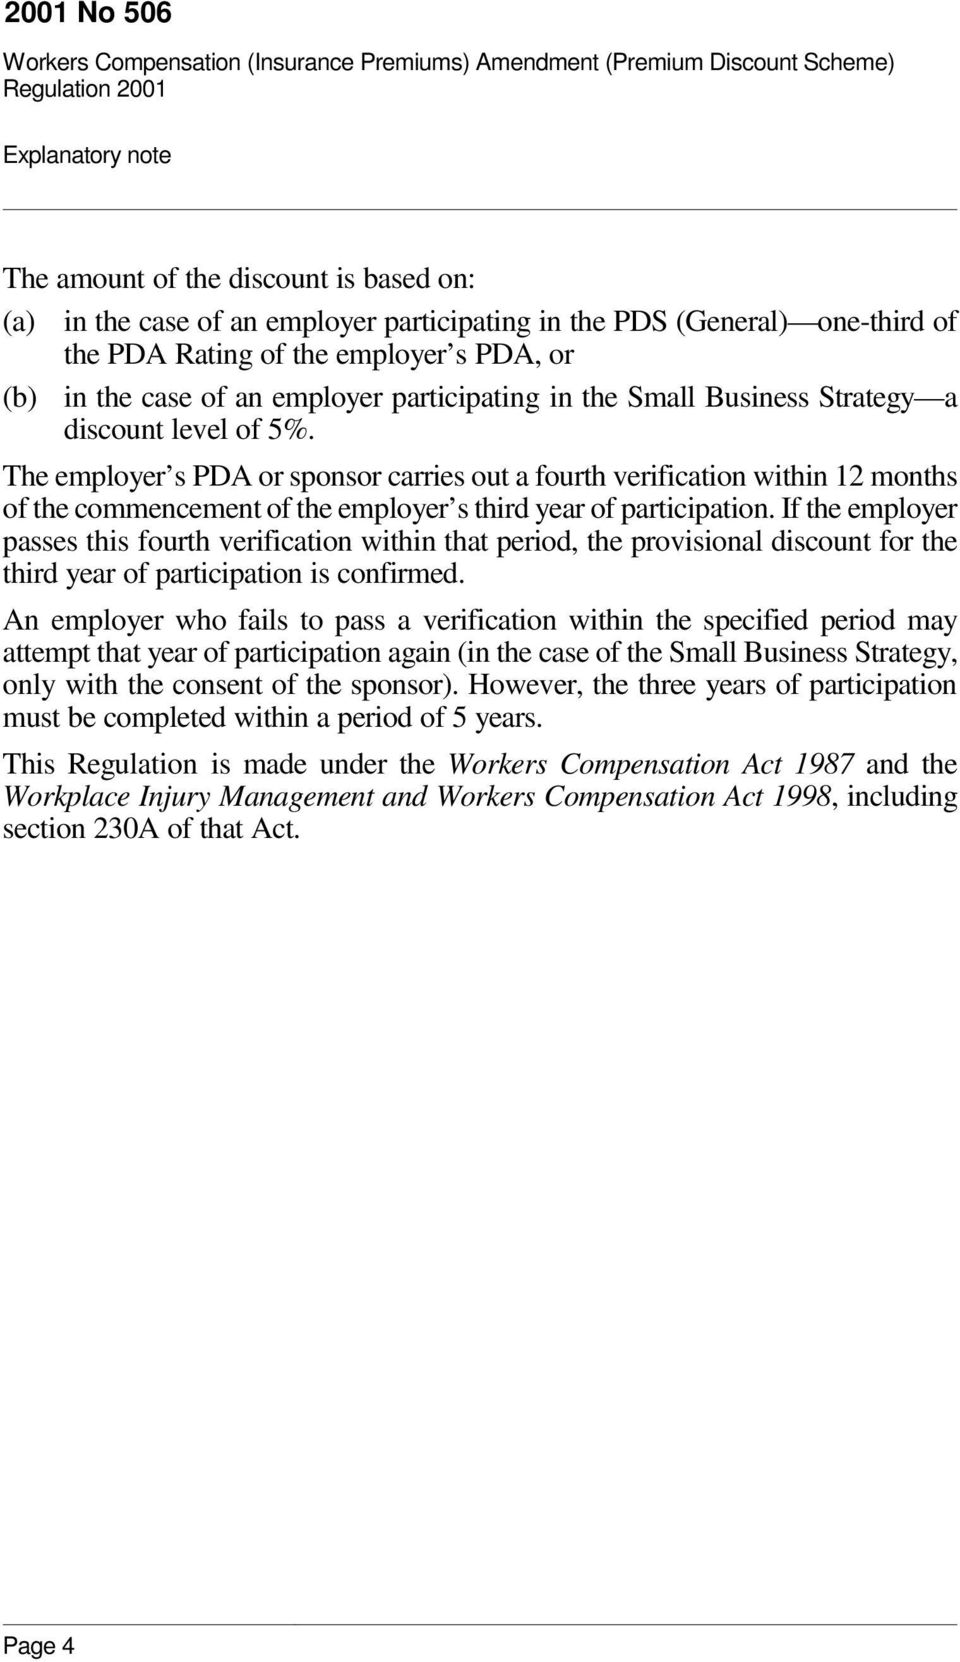 The employer s PDA or sponsor carries out a fourth verification within 12 months of the commencement of the employer s third year of participation.